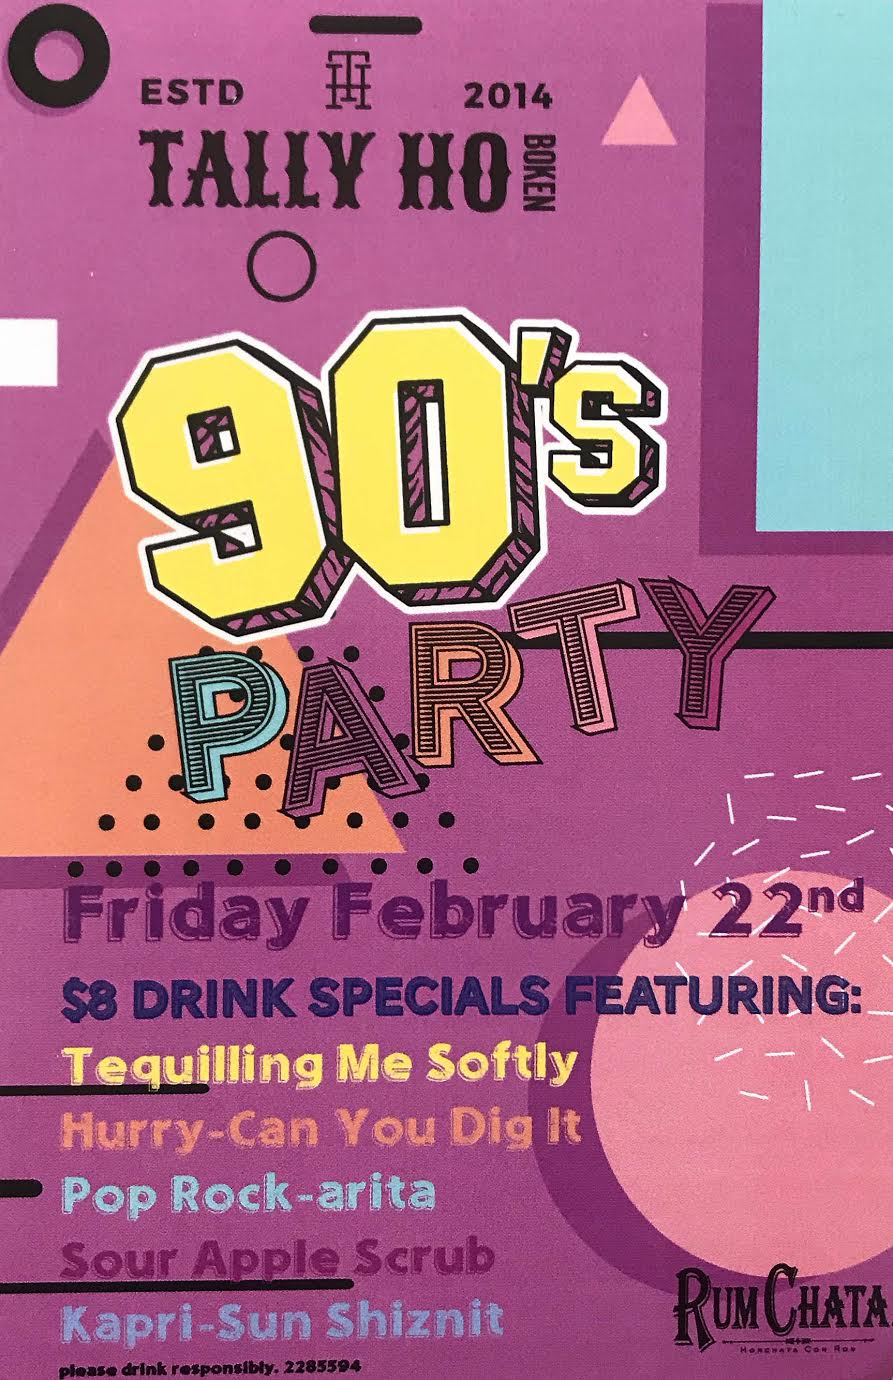 tally ho 90s party